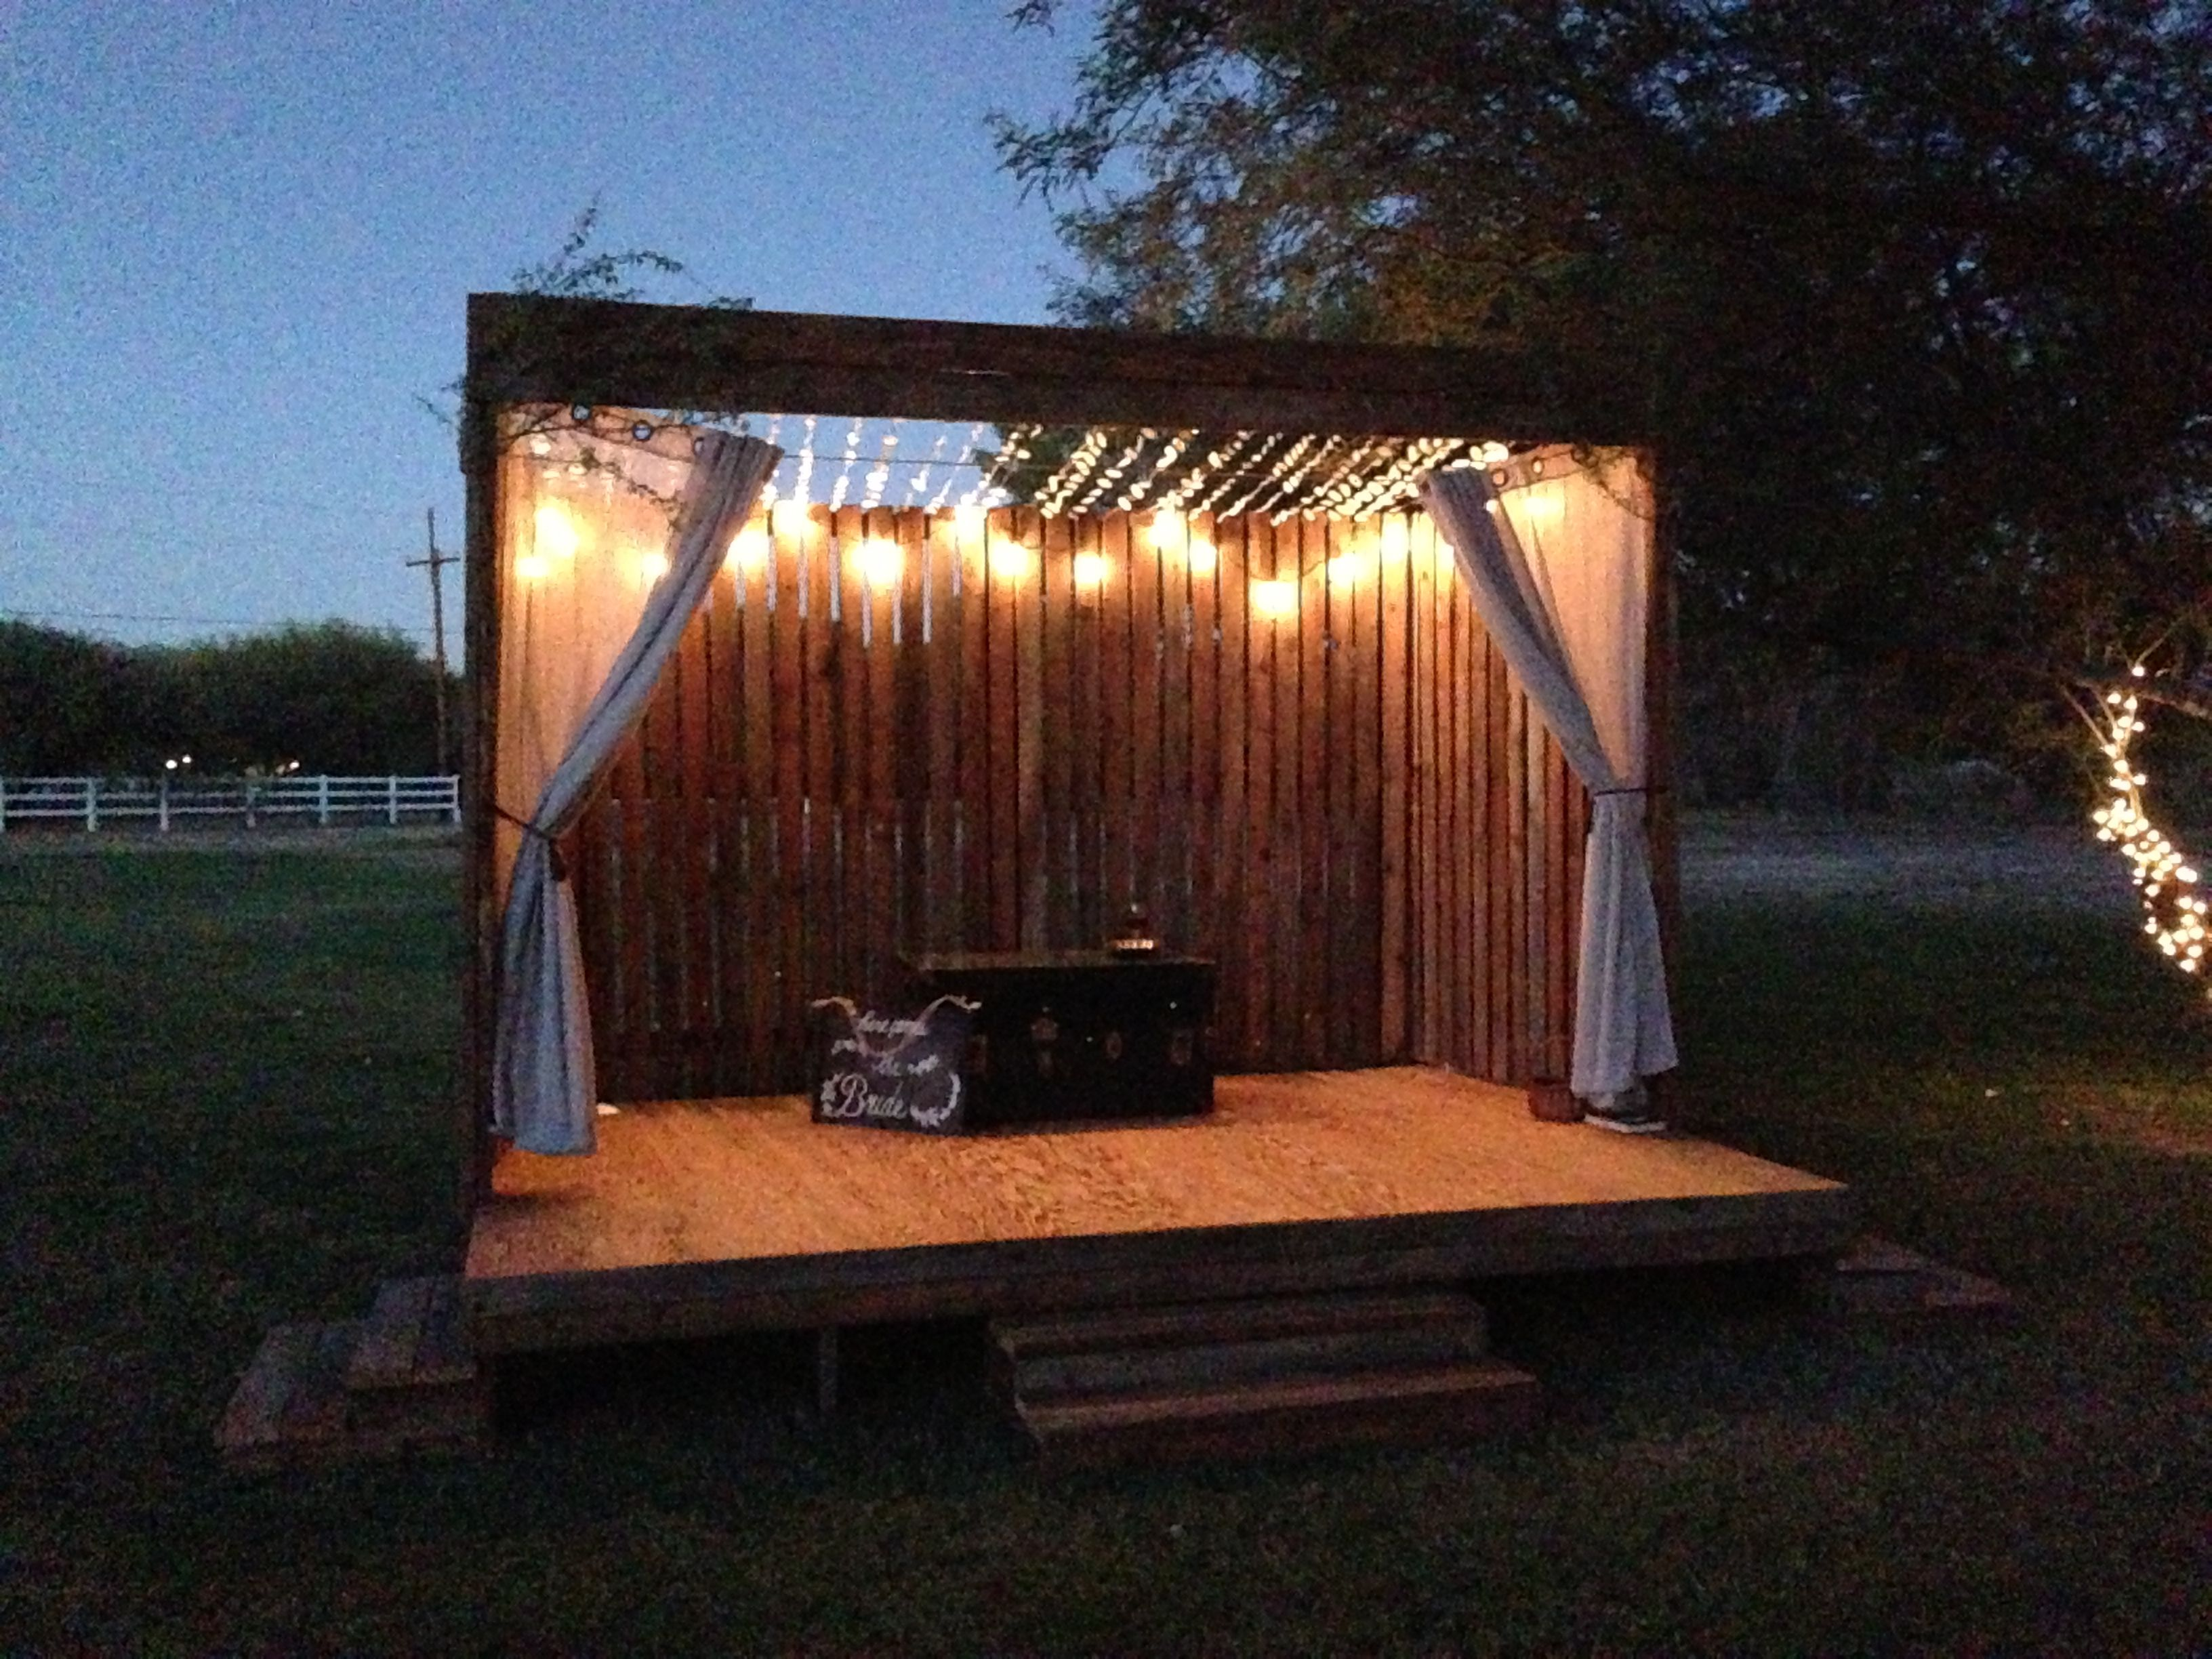 We built this stage for a friend's outdoor wedding